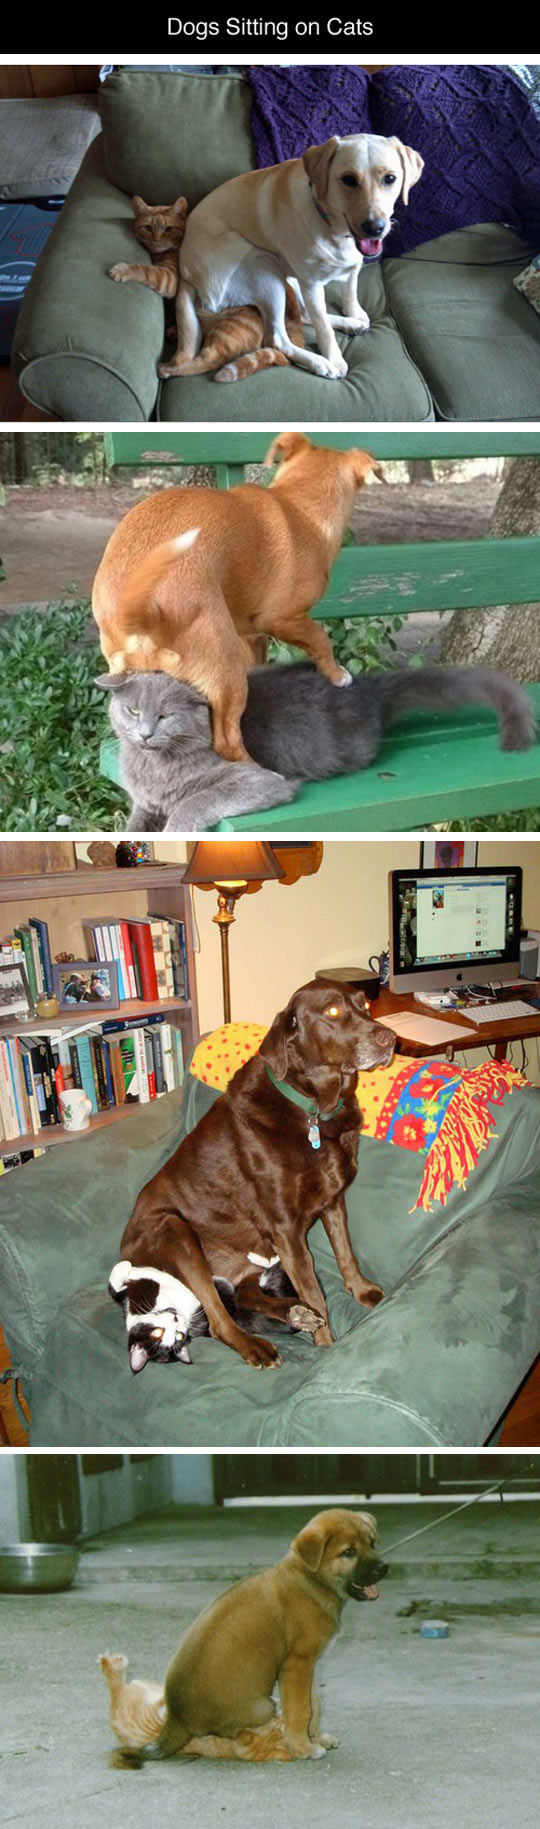 funny-dogs-sitting-cats-couch-park